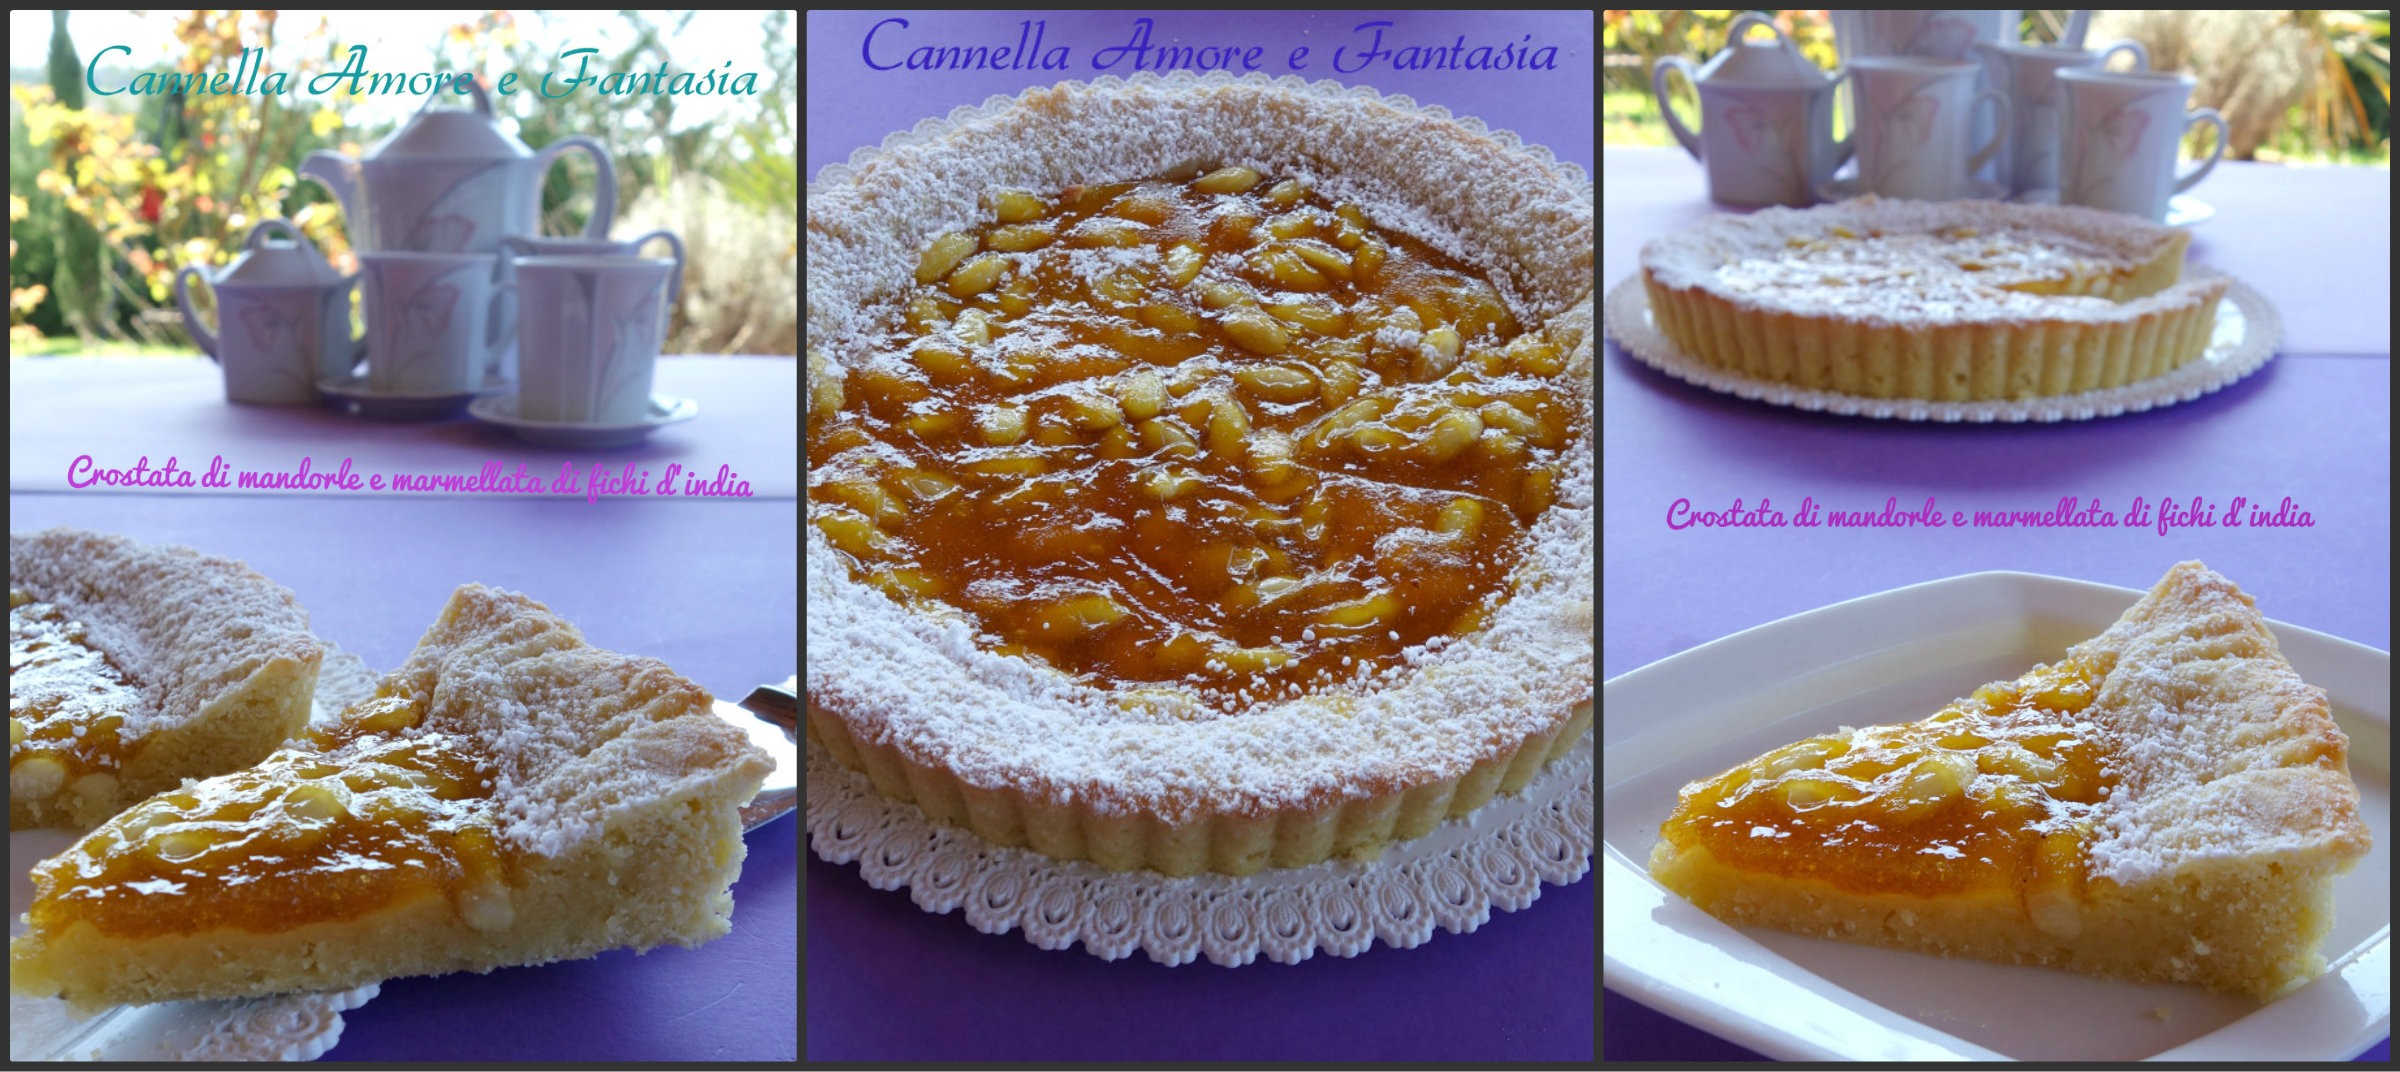 crostata di mandorle e marmellata di fichi d'india collage finito 2